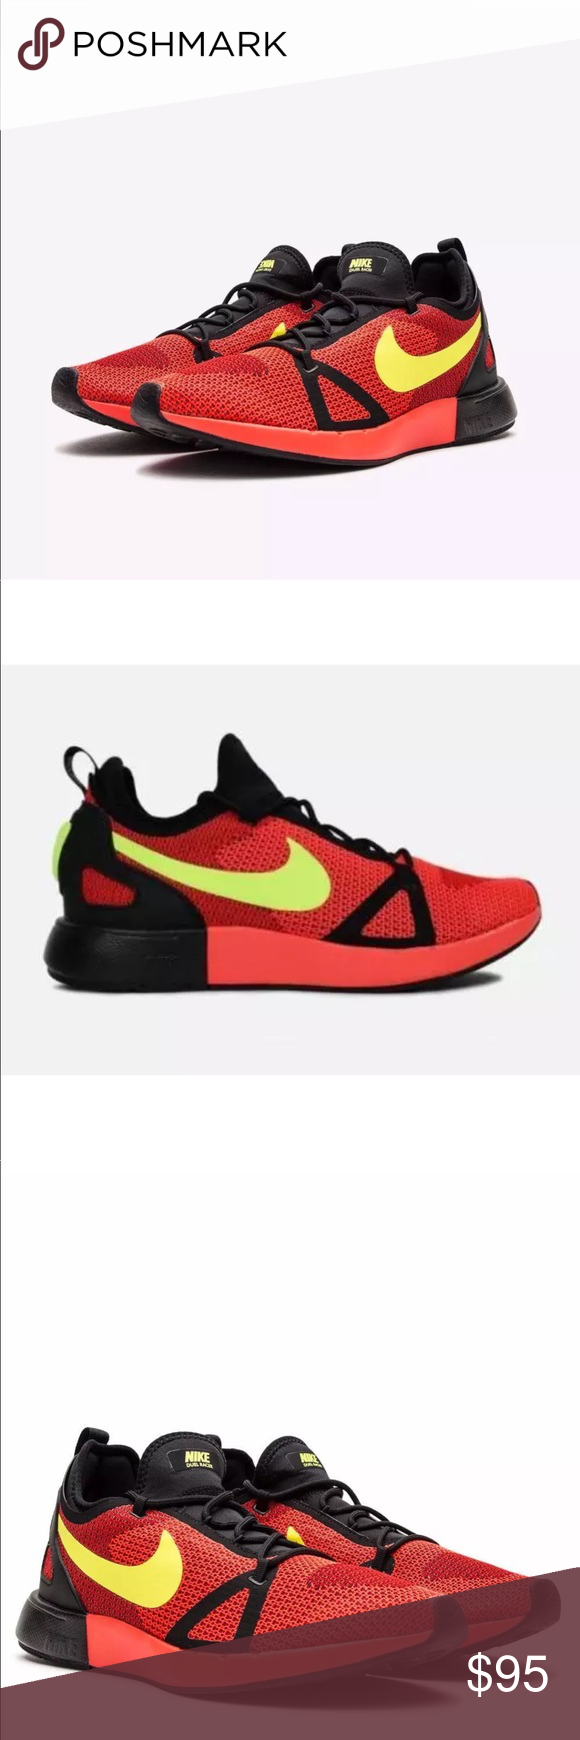 cc89d6a9344 Men s Nike Duel Racer Running Shoes Sz 11 Nike s going way back into the  archives with